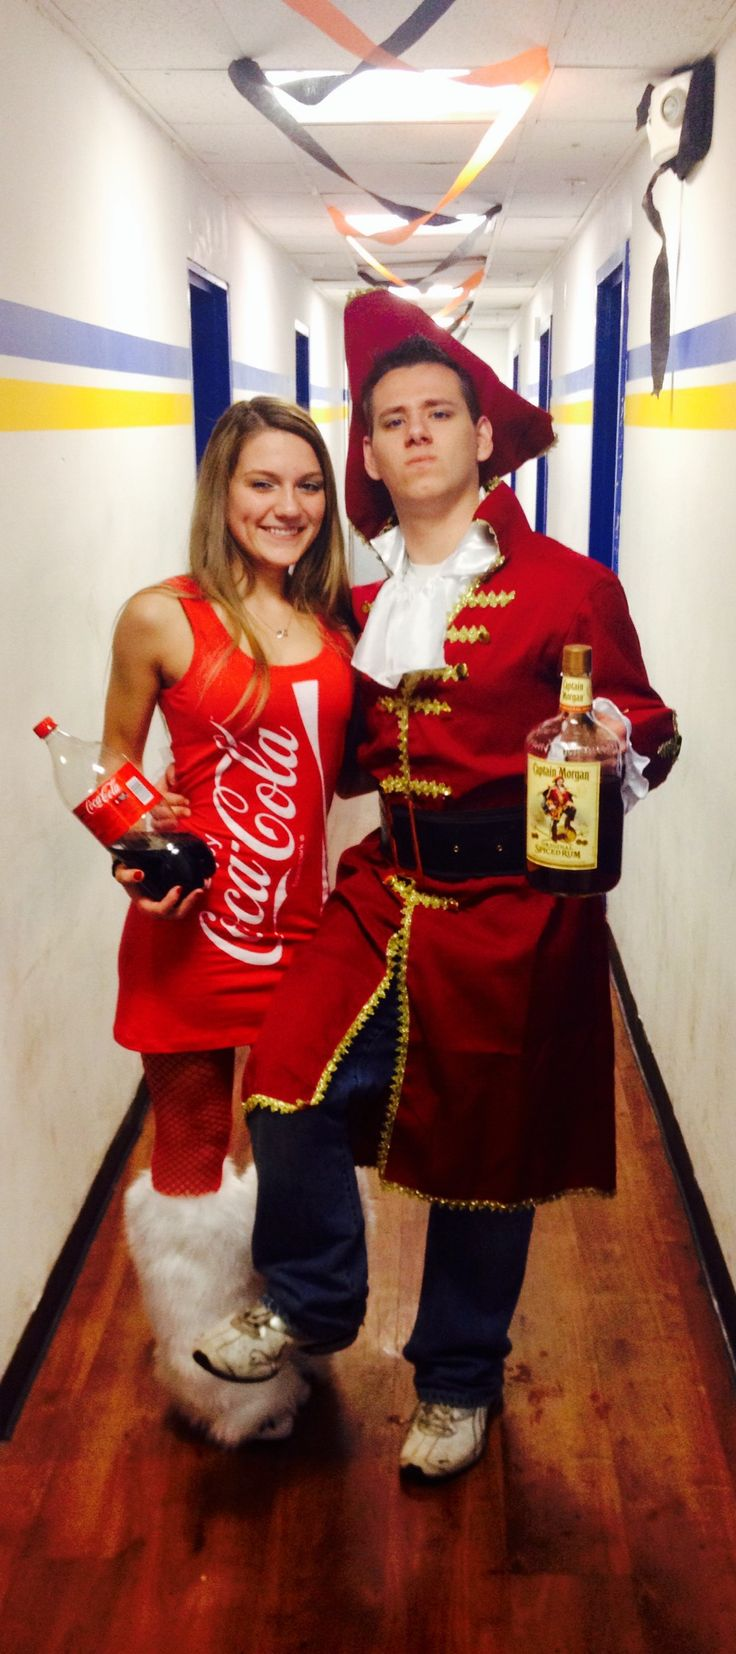 Creative halloween costume diy captain Morgan and coke couples outfit